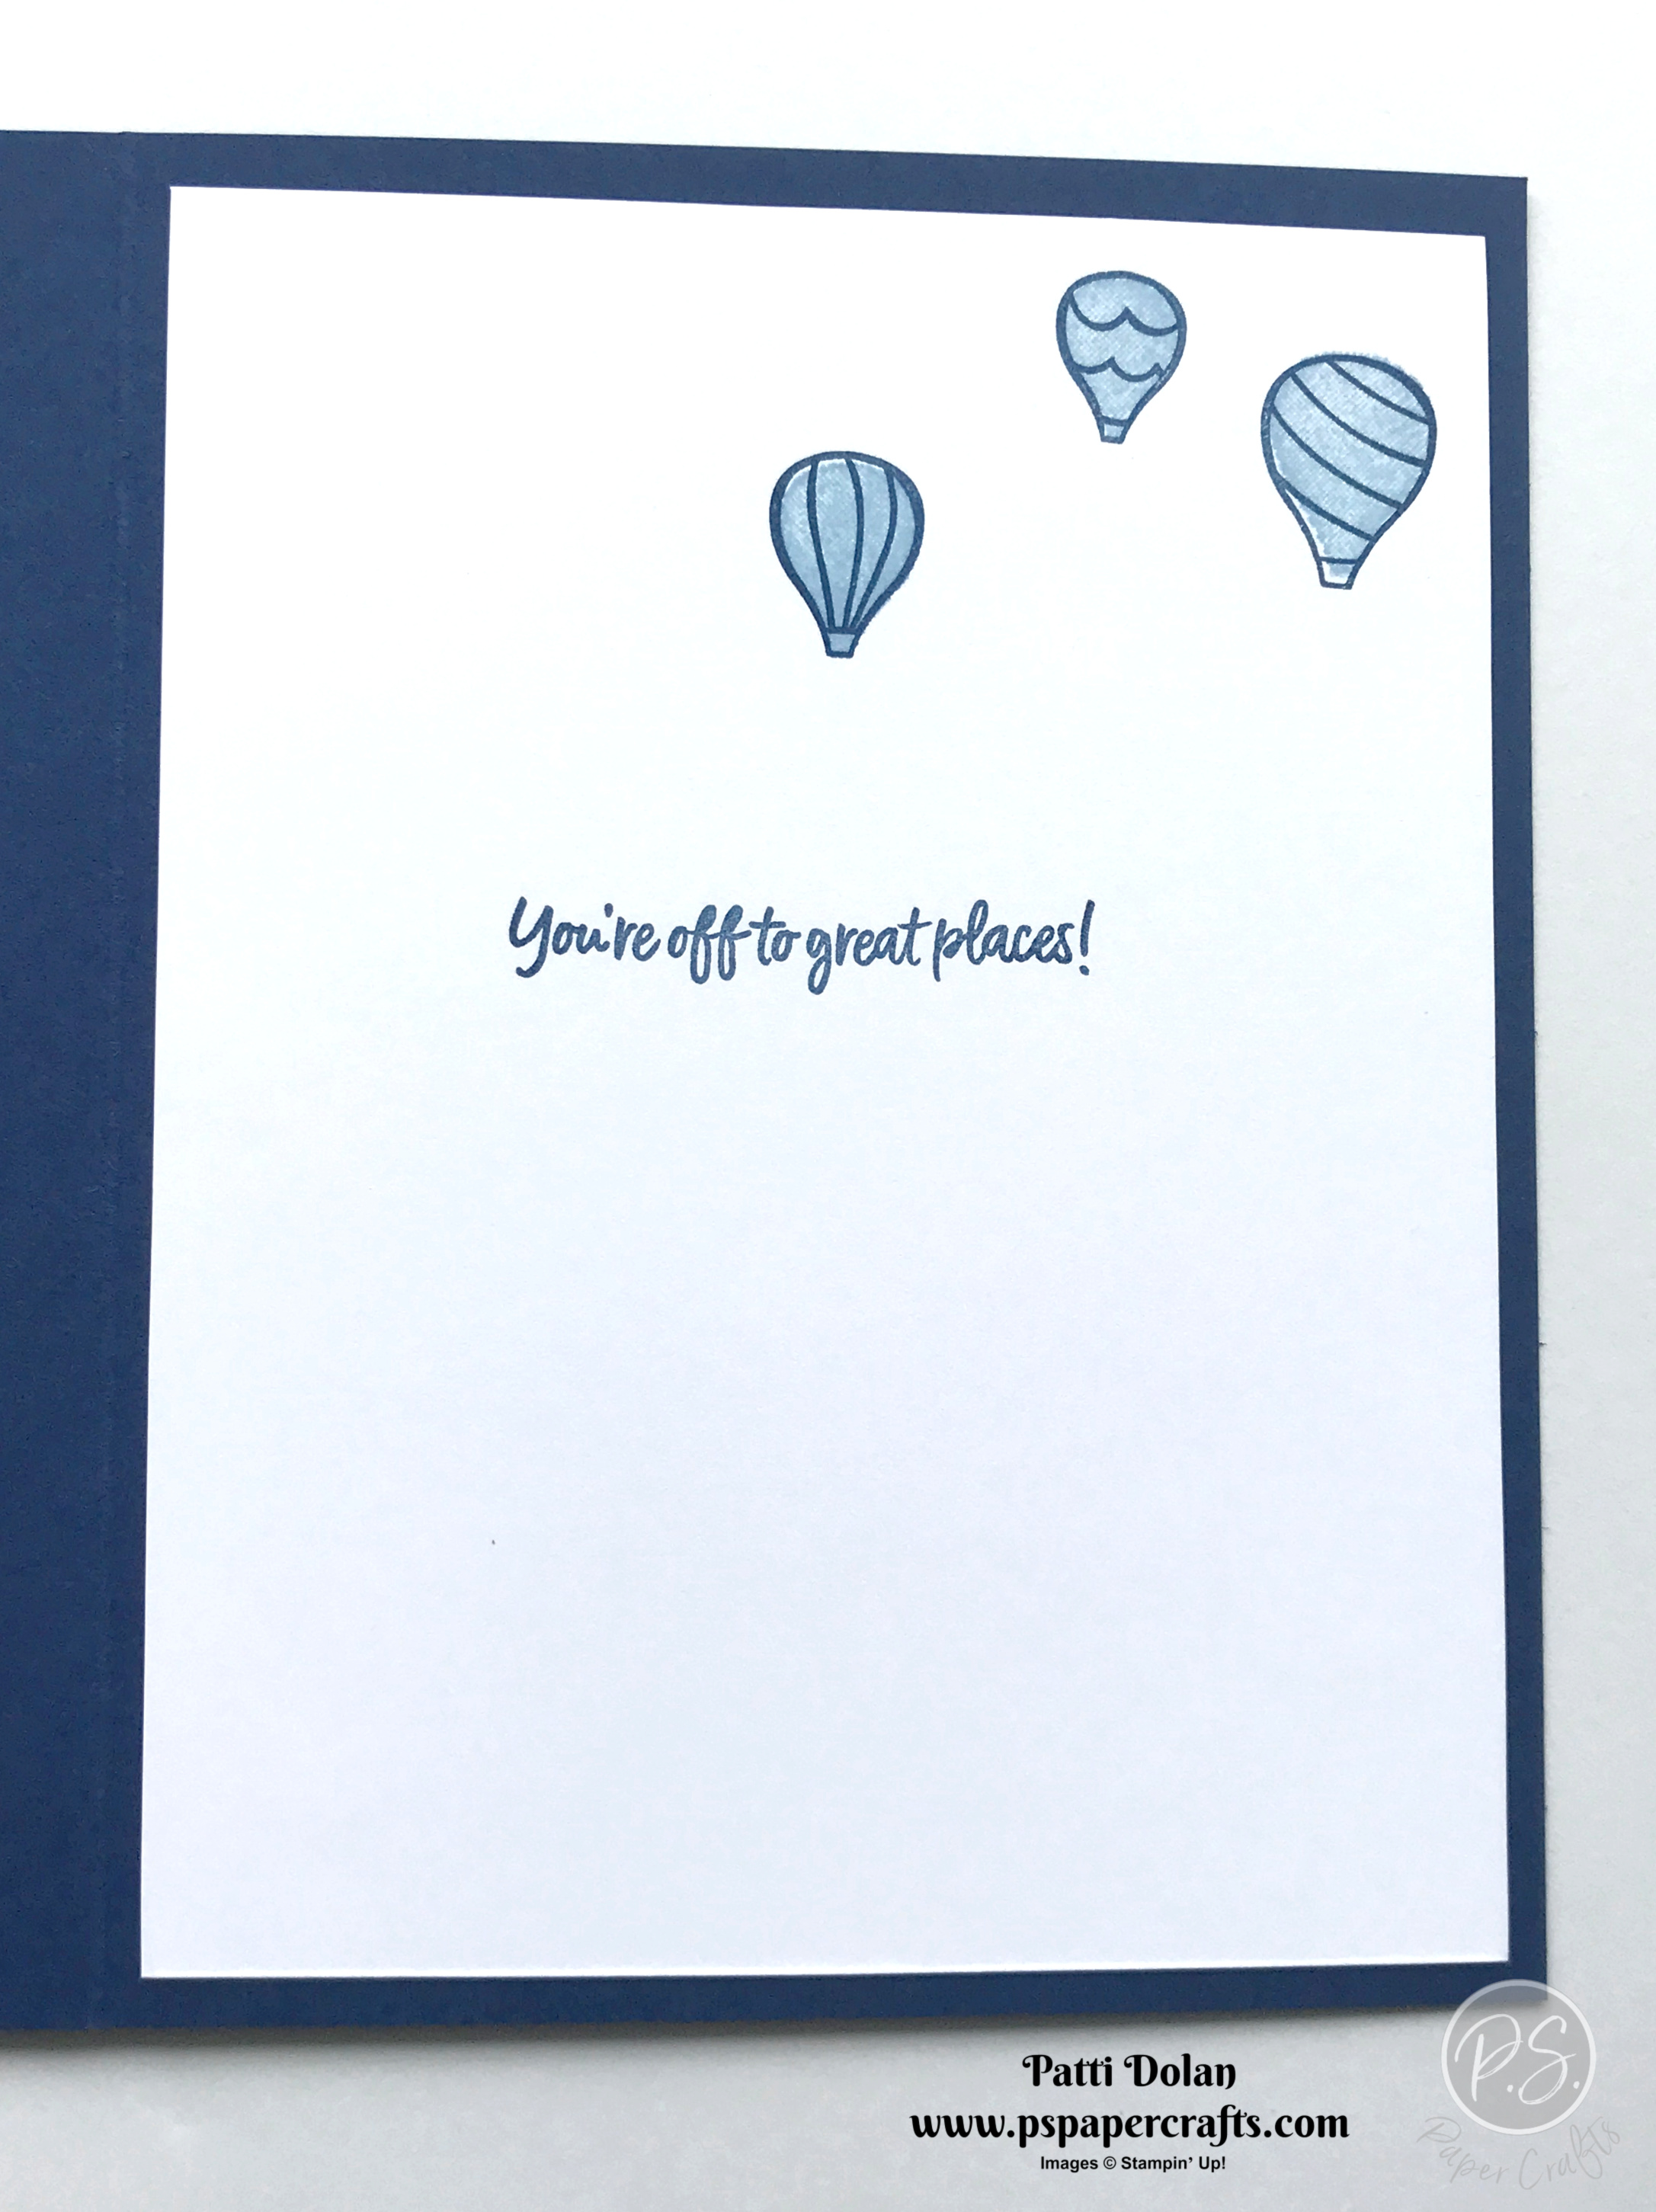 Above The Clouds Card inside.jpg